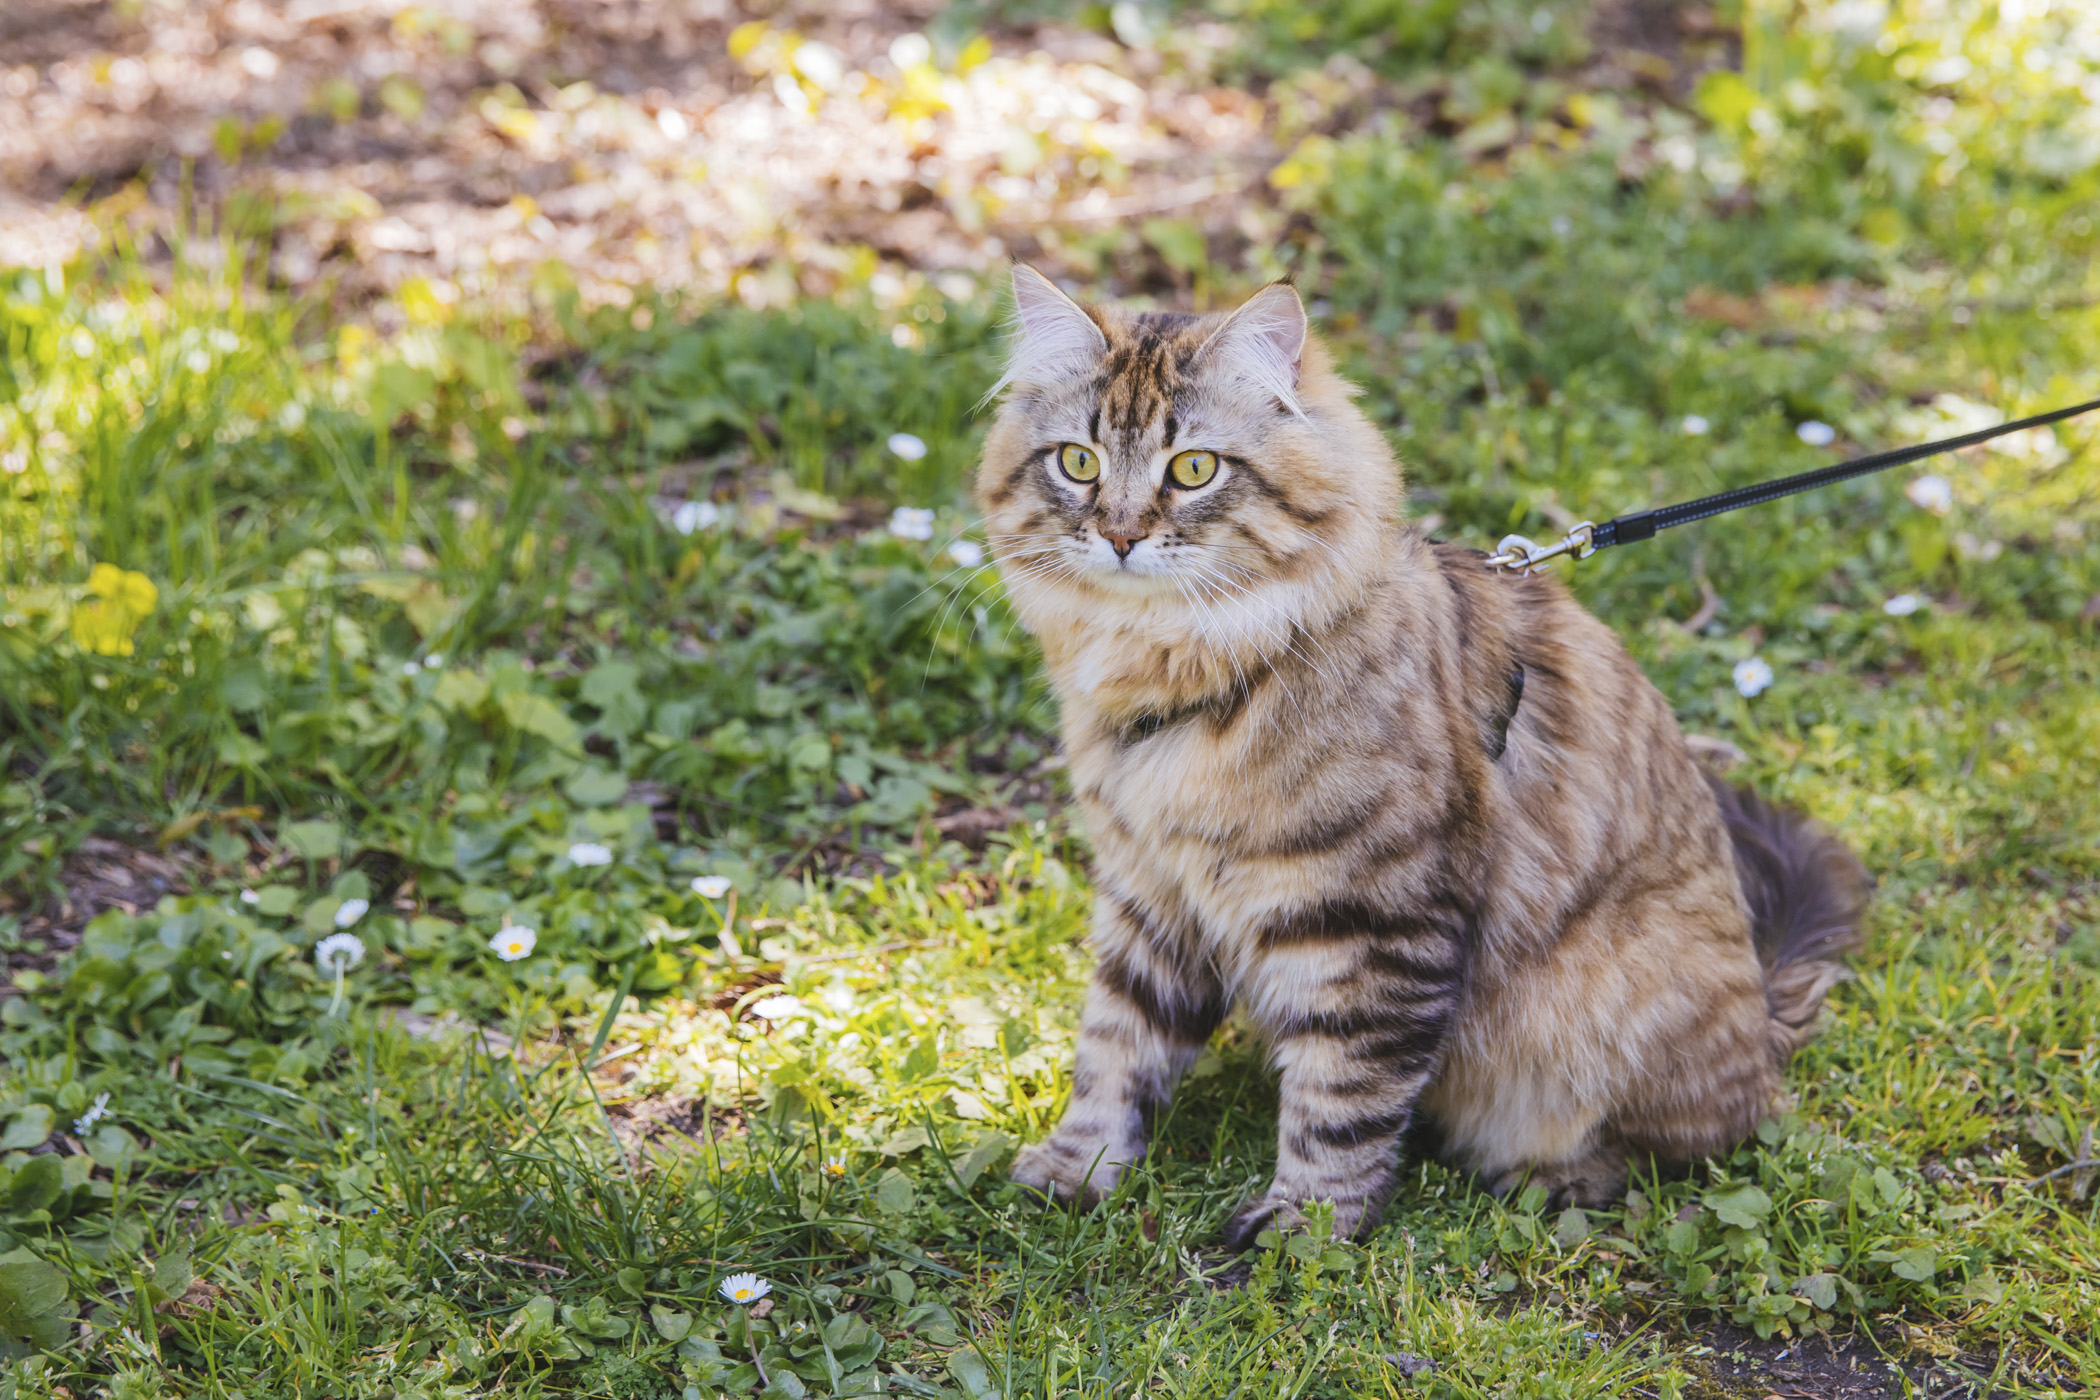 <p>Meet Moose! Moose is a Siberian and is one years old and is a curious adventure cat who often thinks of himself as a human or dog. Moose can be found either trekking the trails of Washington or roaming markets of Seattle with his pawrents! He likes birds, fish, food, exercise, the outdoors and hiking. He dislikes the heat, other kit cats and not being the center of attention. You can follow Moose on social media @moosetheadventurecat.{&nbsp;}The Seattle RUFFined Spotlight is a weekly profile of local pets living and loving life in the PNW. If you or someone you know has a pet you'd like featured, email us at hello@seattlerefined.com or tag #SeattleRUFFined and your furbaby could be the next spotlighted! (Image: Sunita Martini / Seattle Refined)</p>